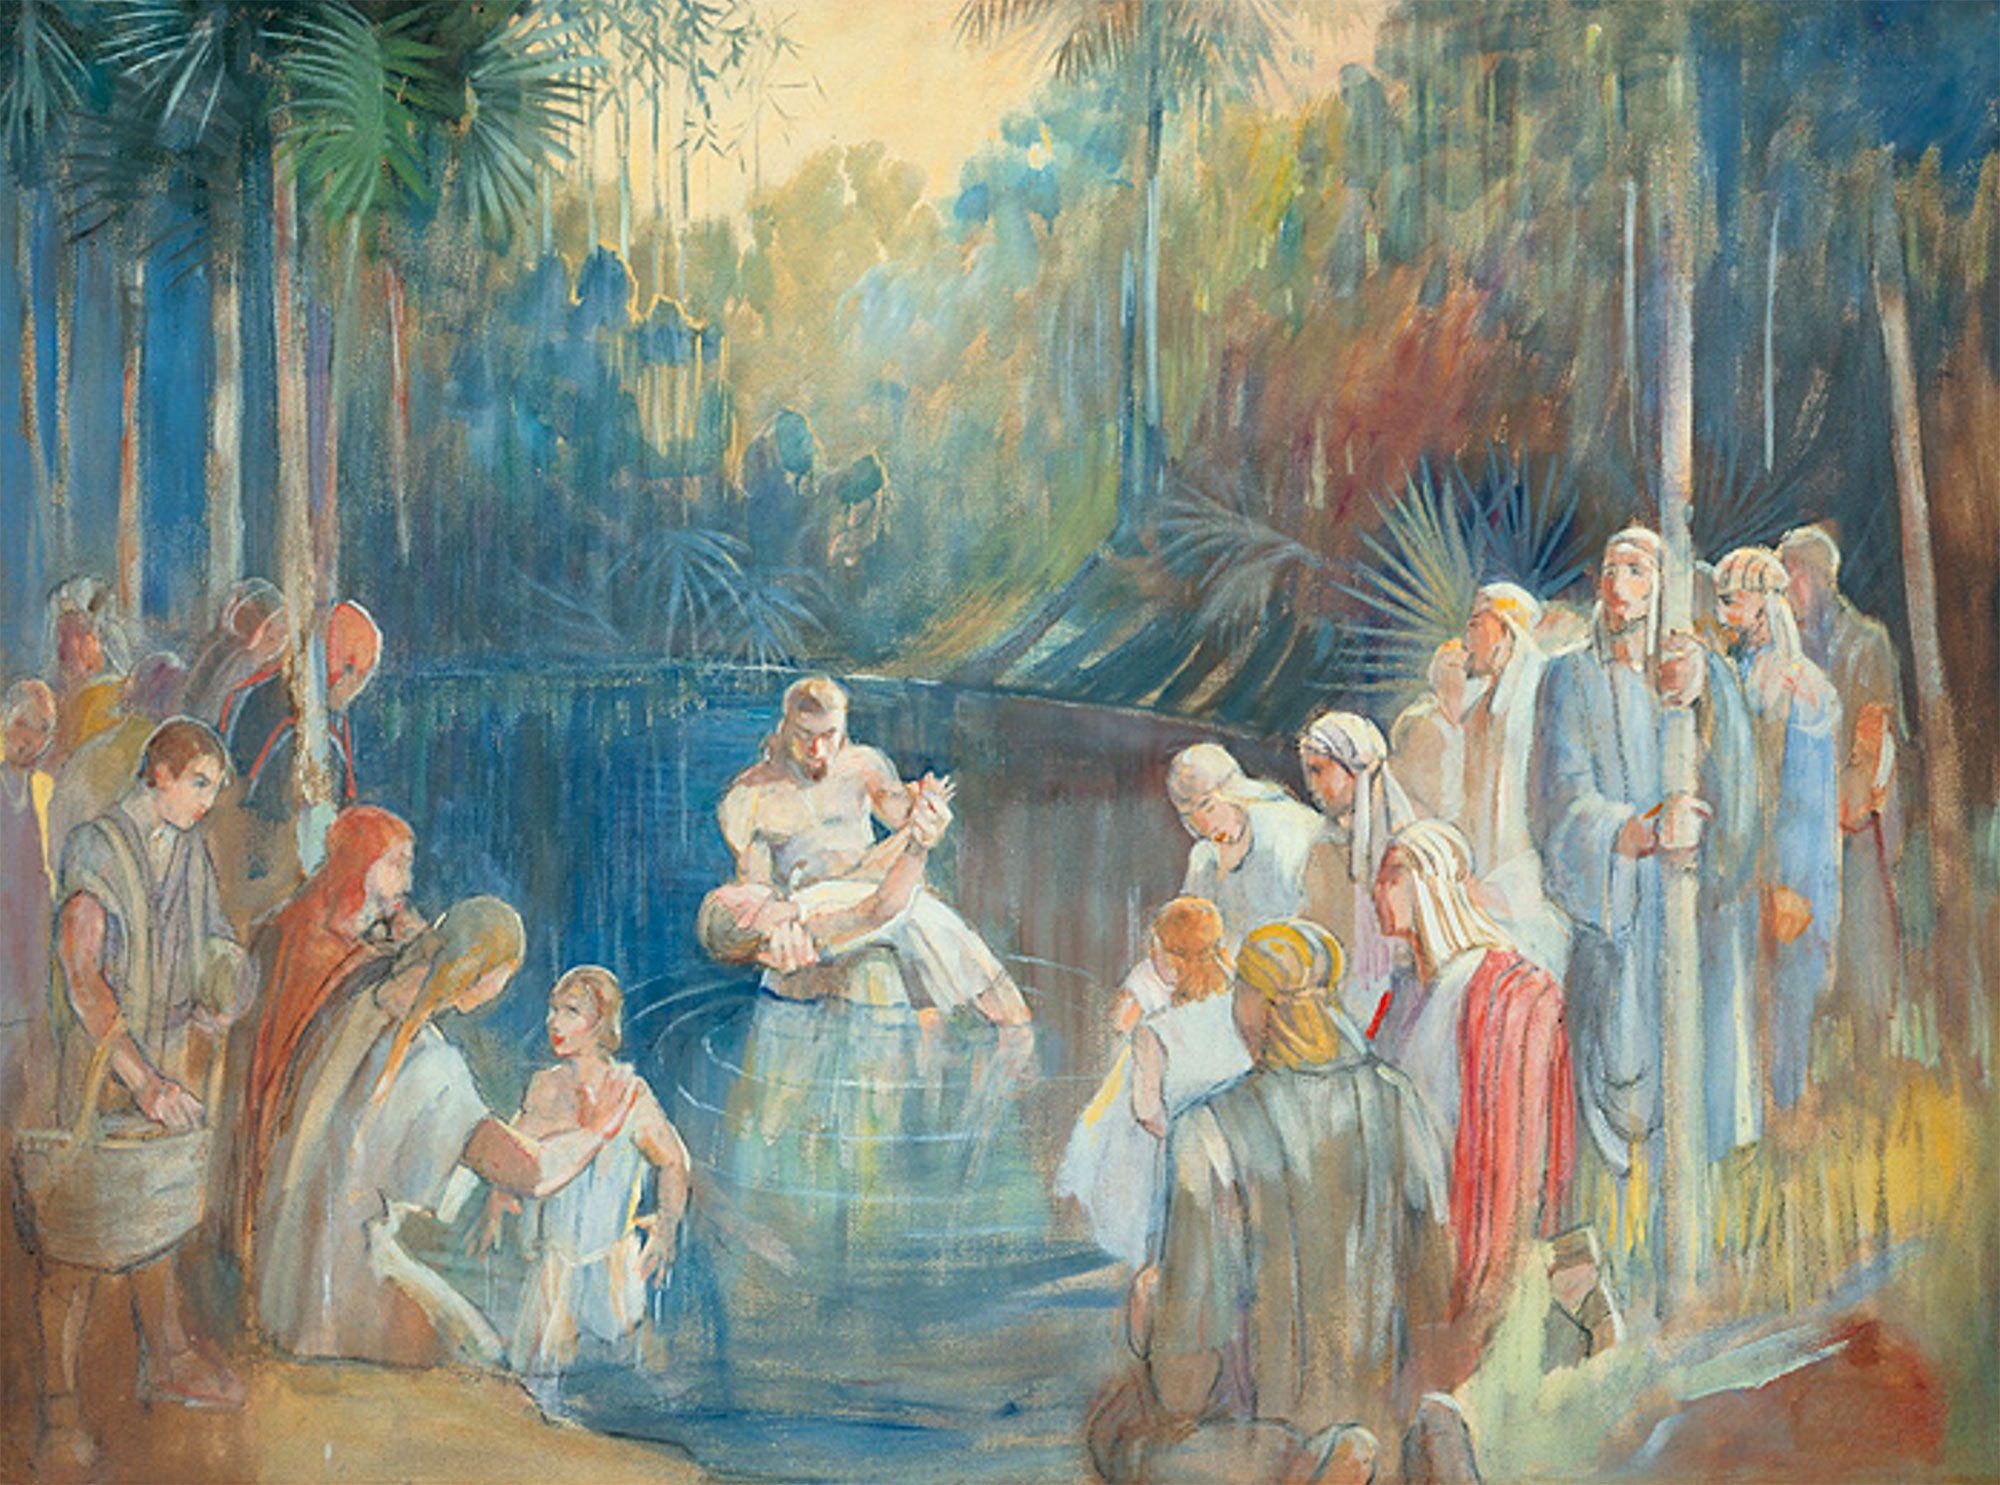 At Baptism, What Do We Covenant to Do? Mormon art